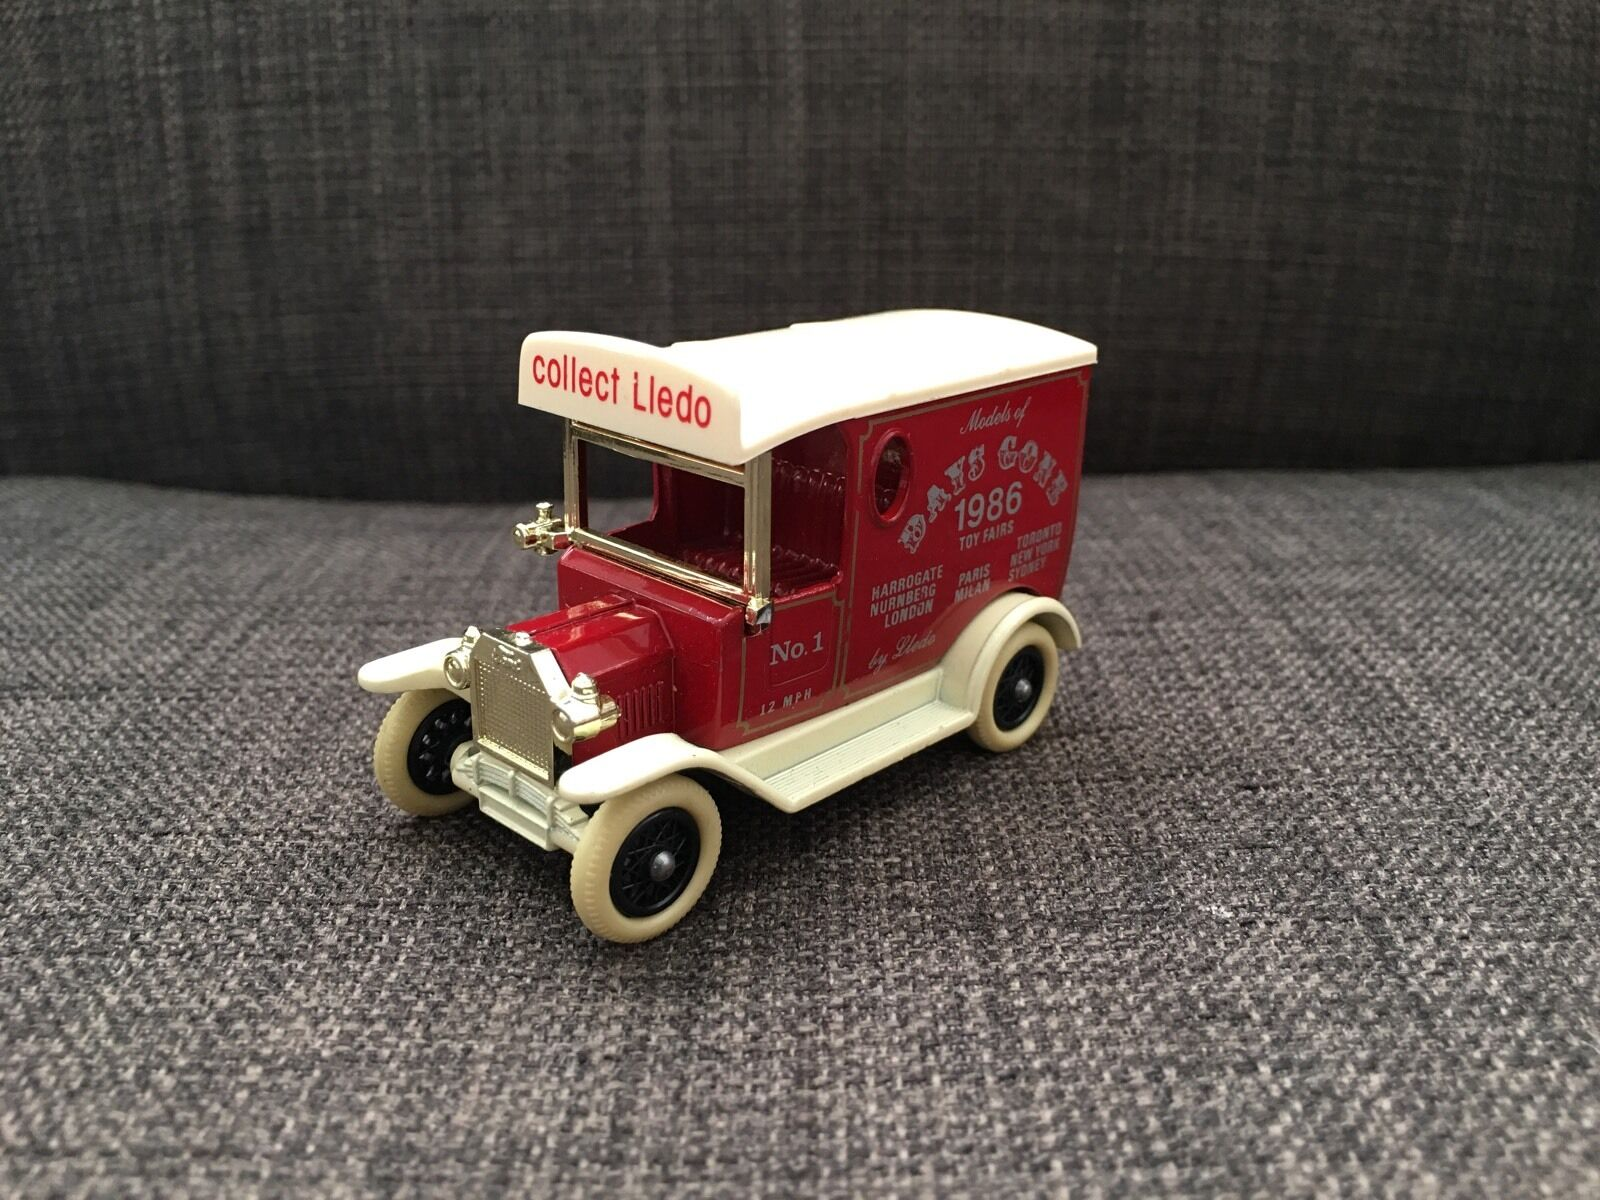 Lledo Days Gone Toy Fairs 1986 Model T Toy Car